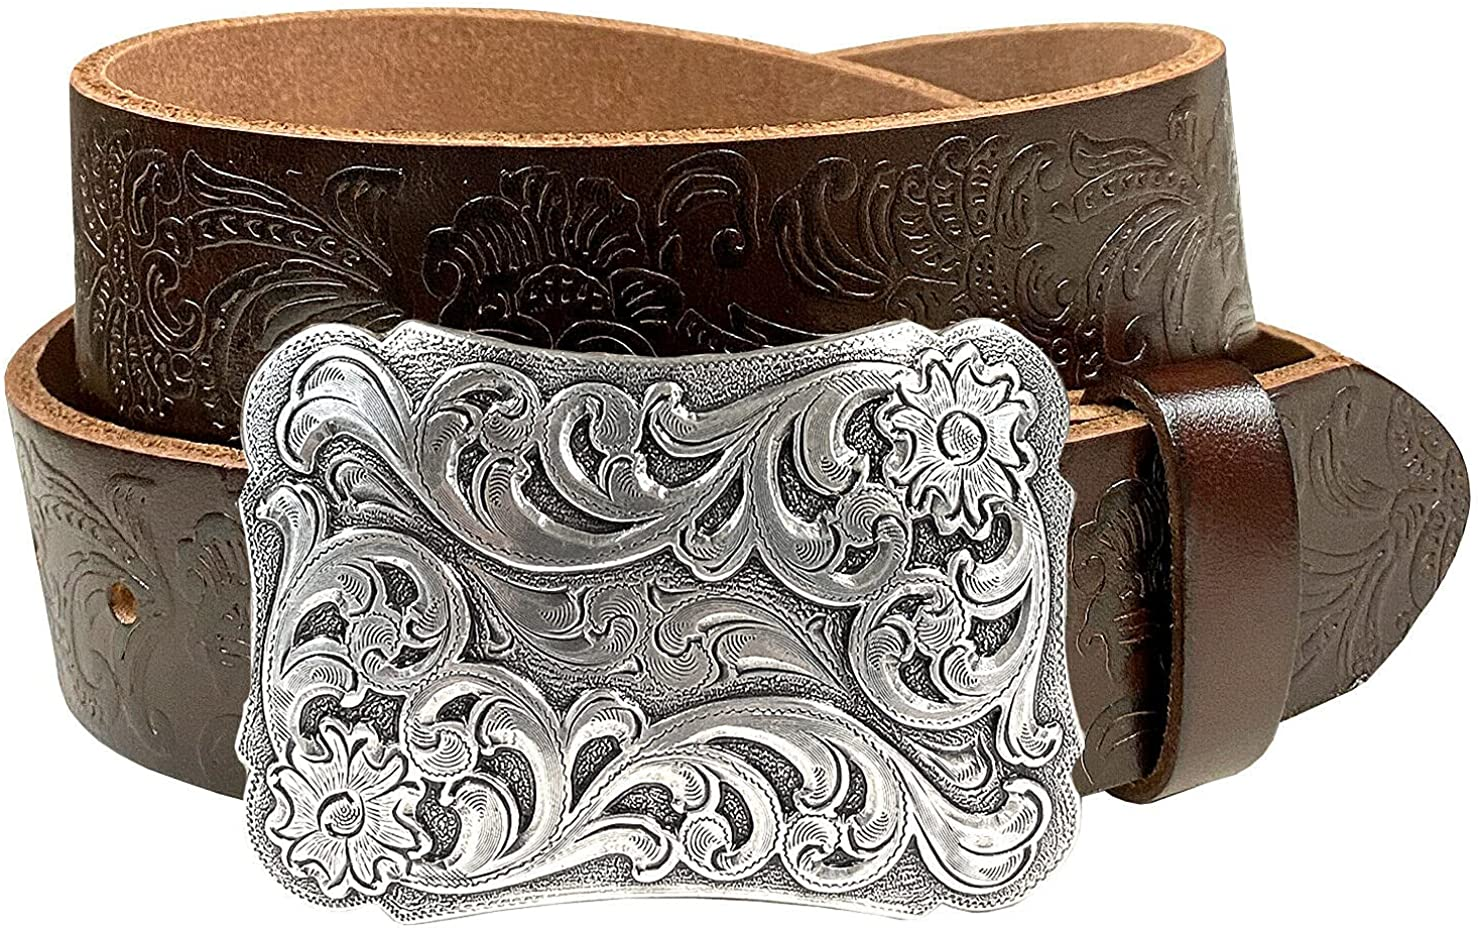 Genuine Free Shipping Western Fashion Style Floral Engraved Grain Full Attention brand Buckle